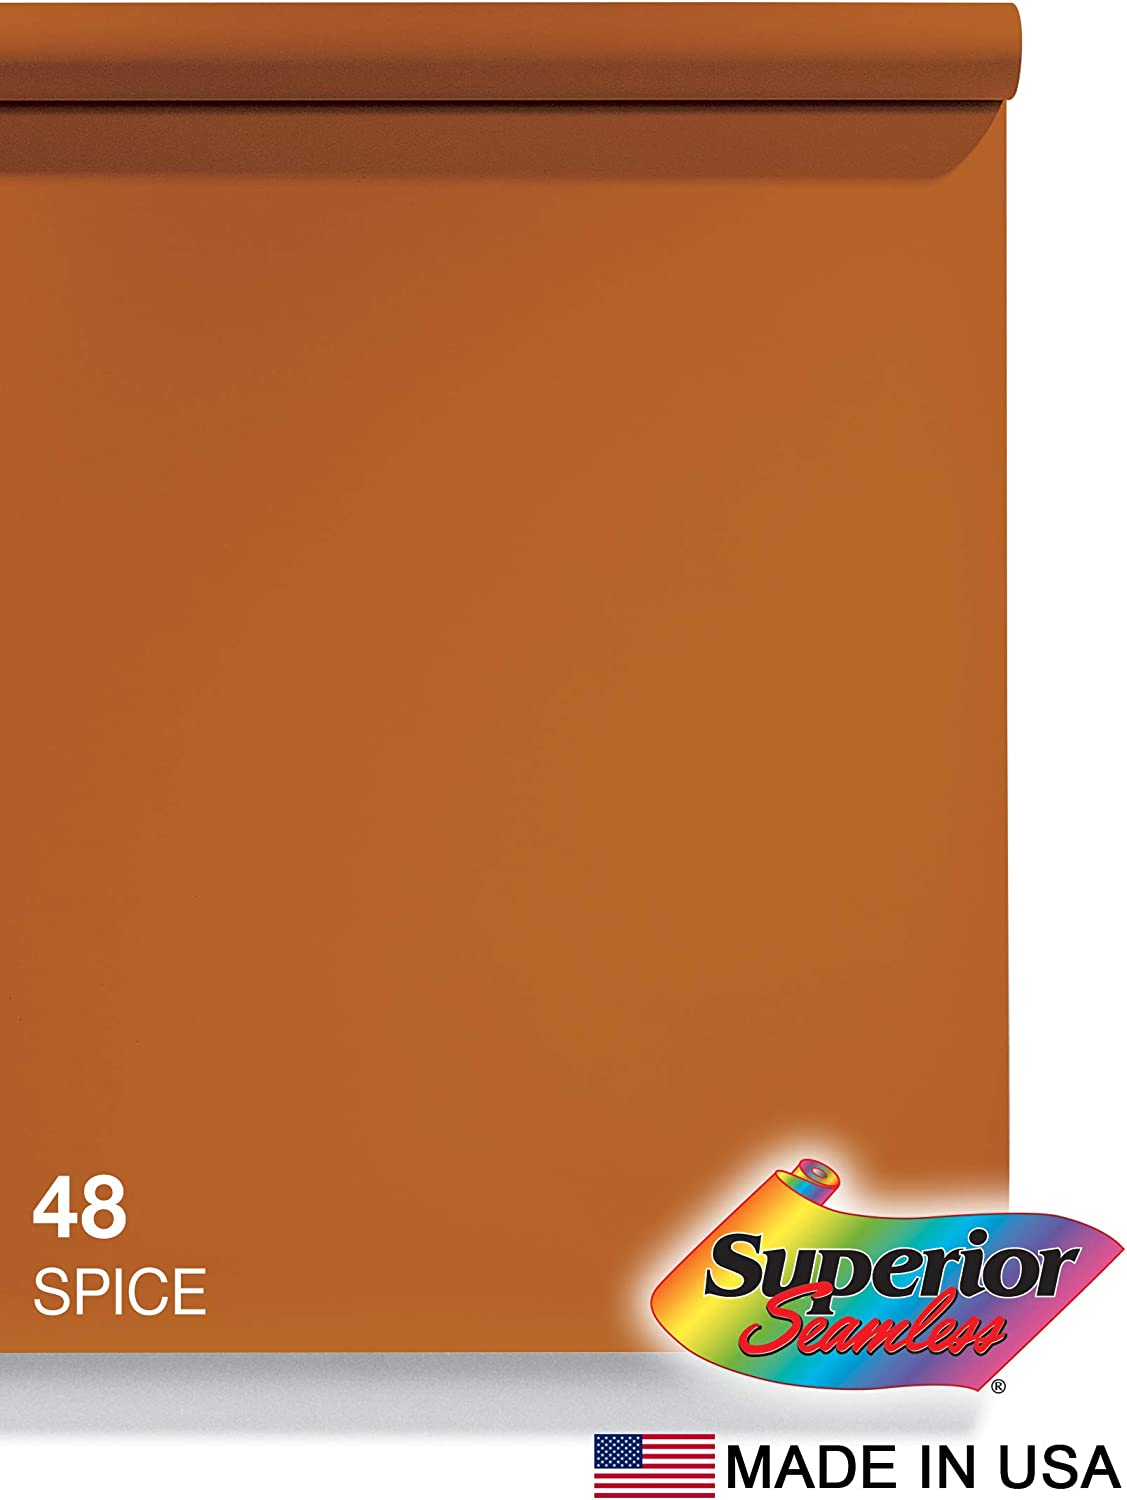 Superior Seamless Photography Background Paper, 48 Spice (53 inches Wide x 18 feet Long)